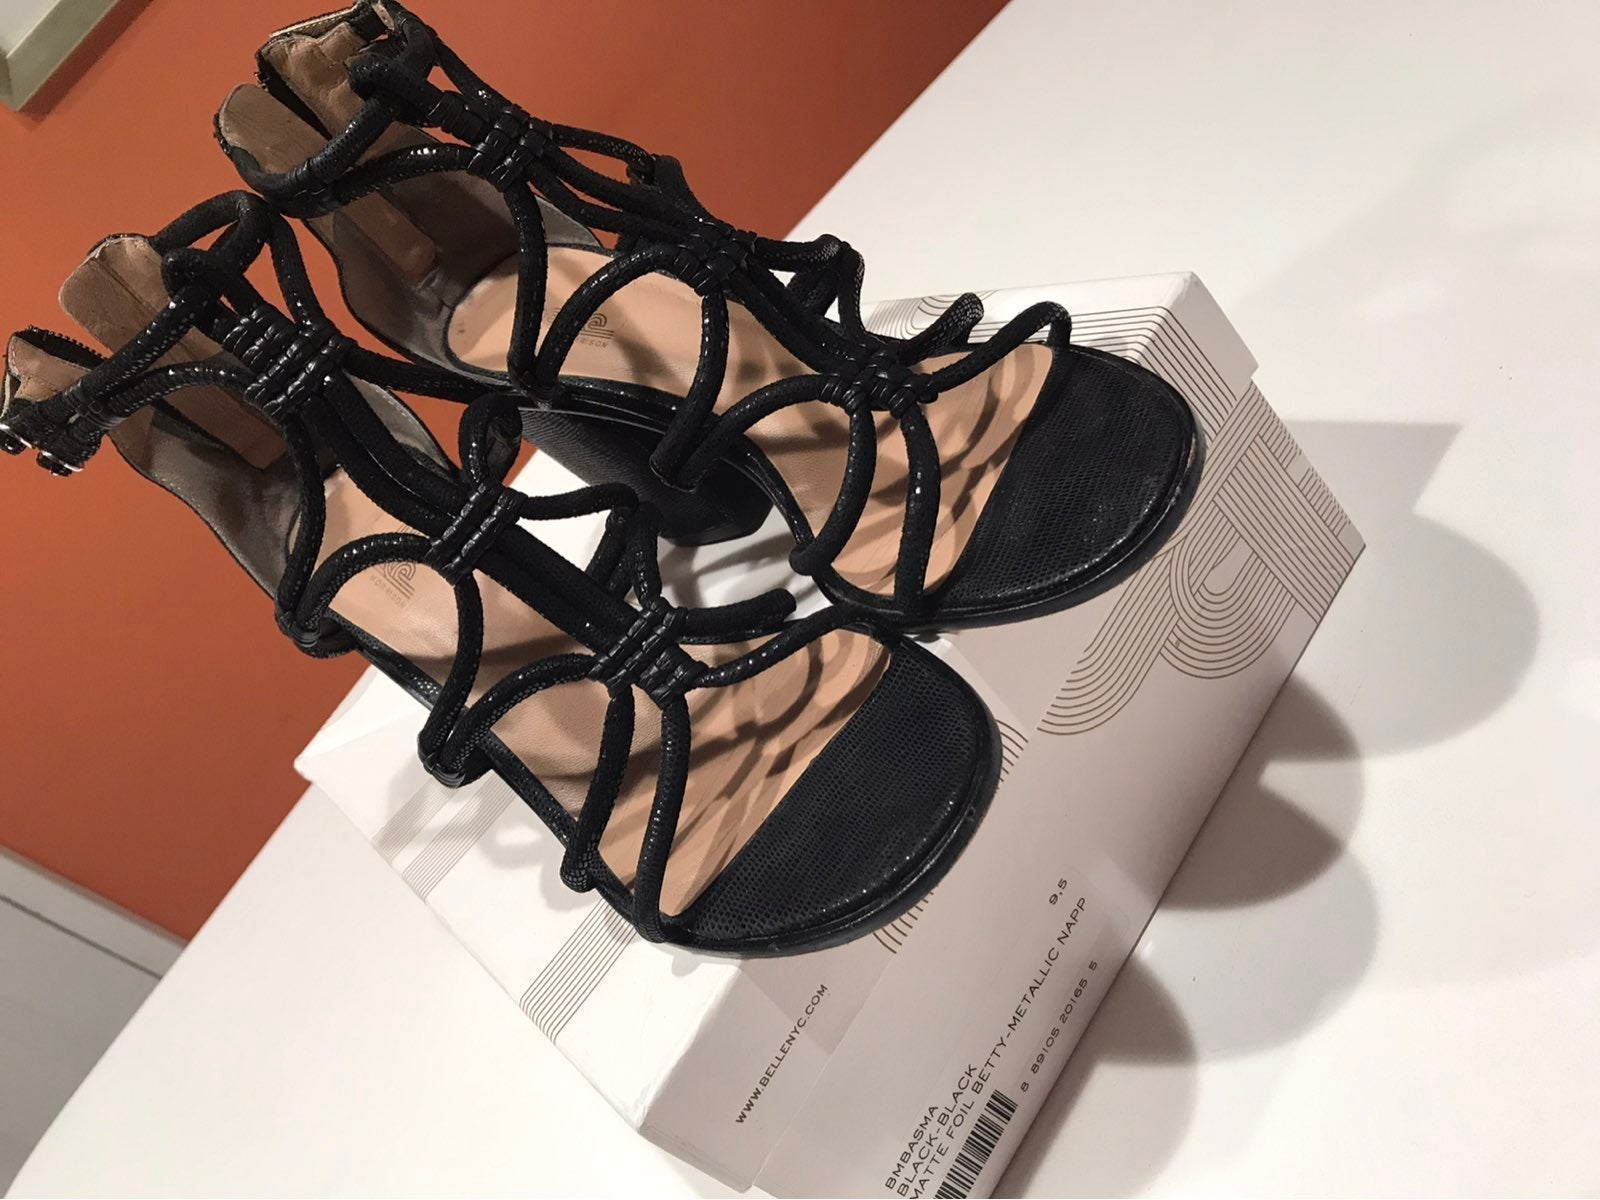 Women's Black All Leather Sandals,9.5 B